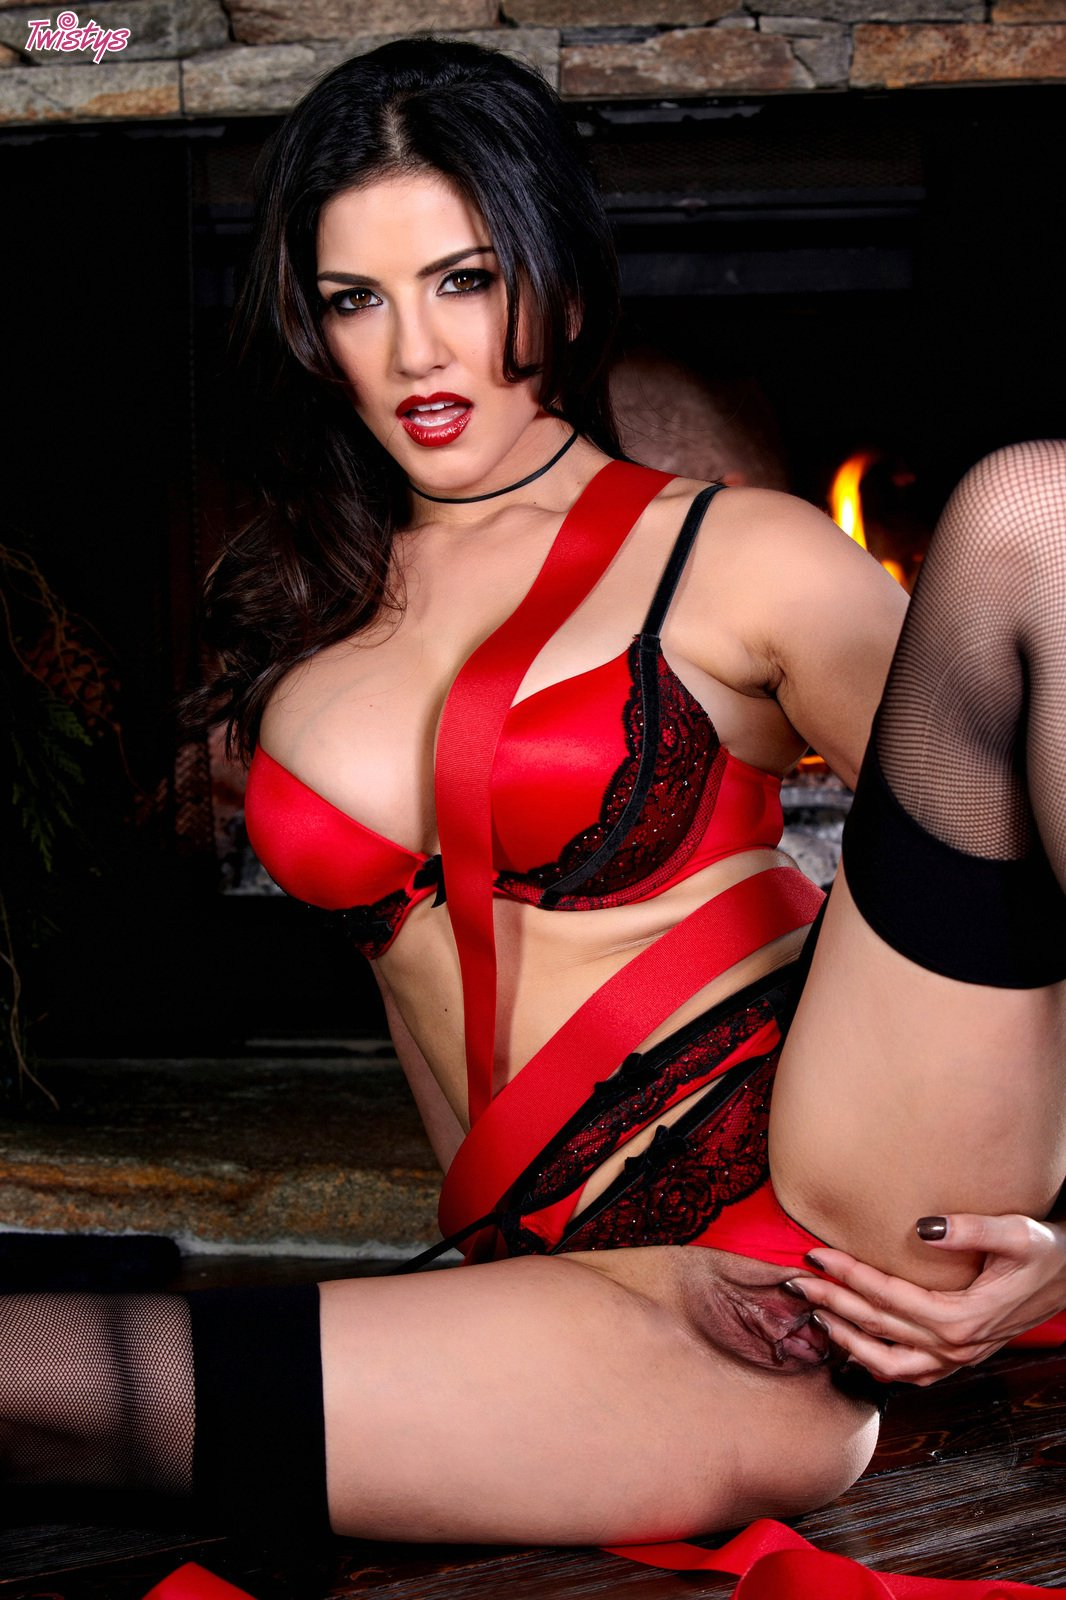 Sunny Leone in black stockings showing off her sexy body.